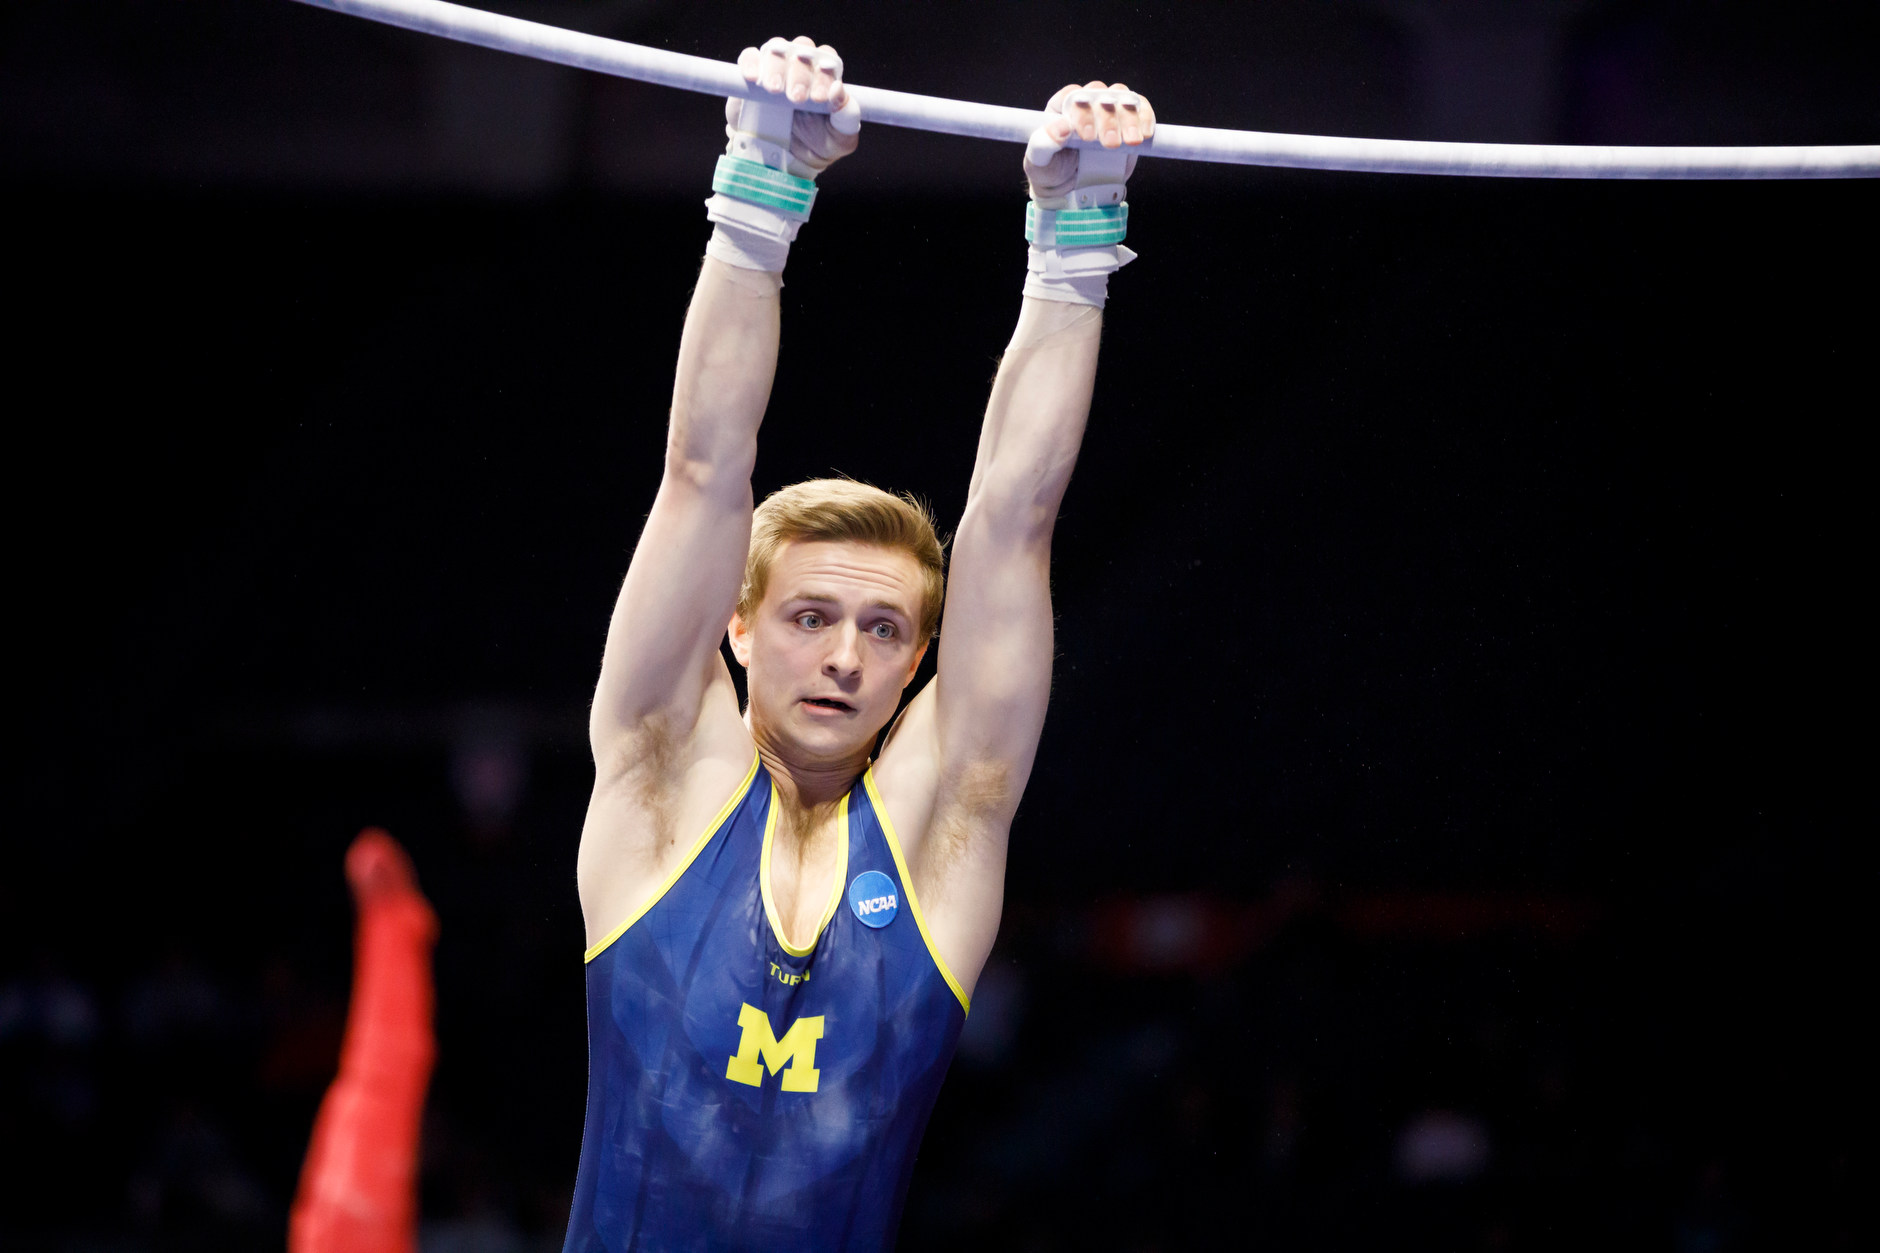 Michigan's Alec Krystek competes on the horizontal bar at the NCAA Men's Gymnastics Championships on Saturday, April 20, 2019, at the State Farm Center in Champaign, Illinois. (Photo by James Brosher)